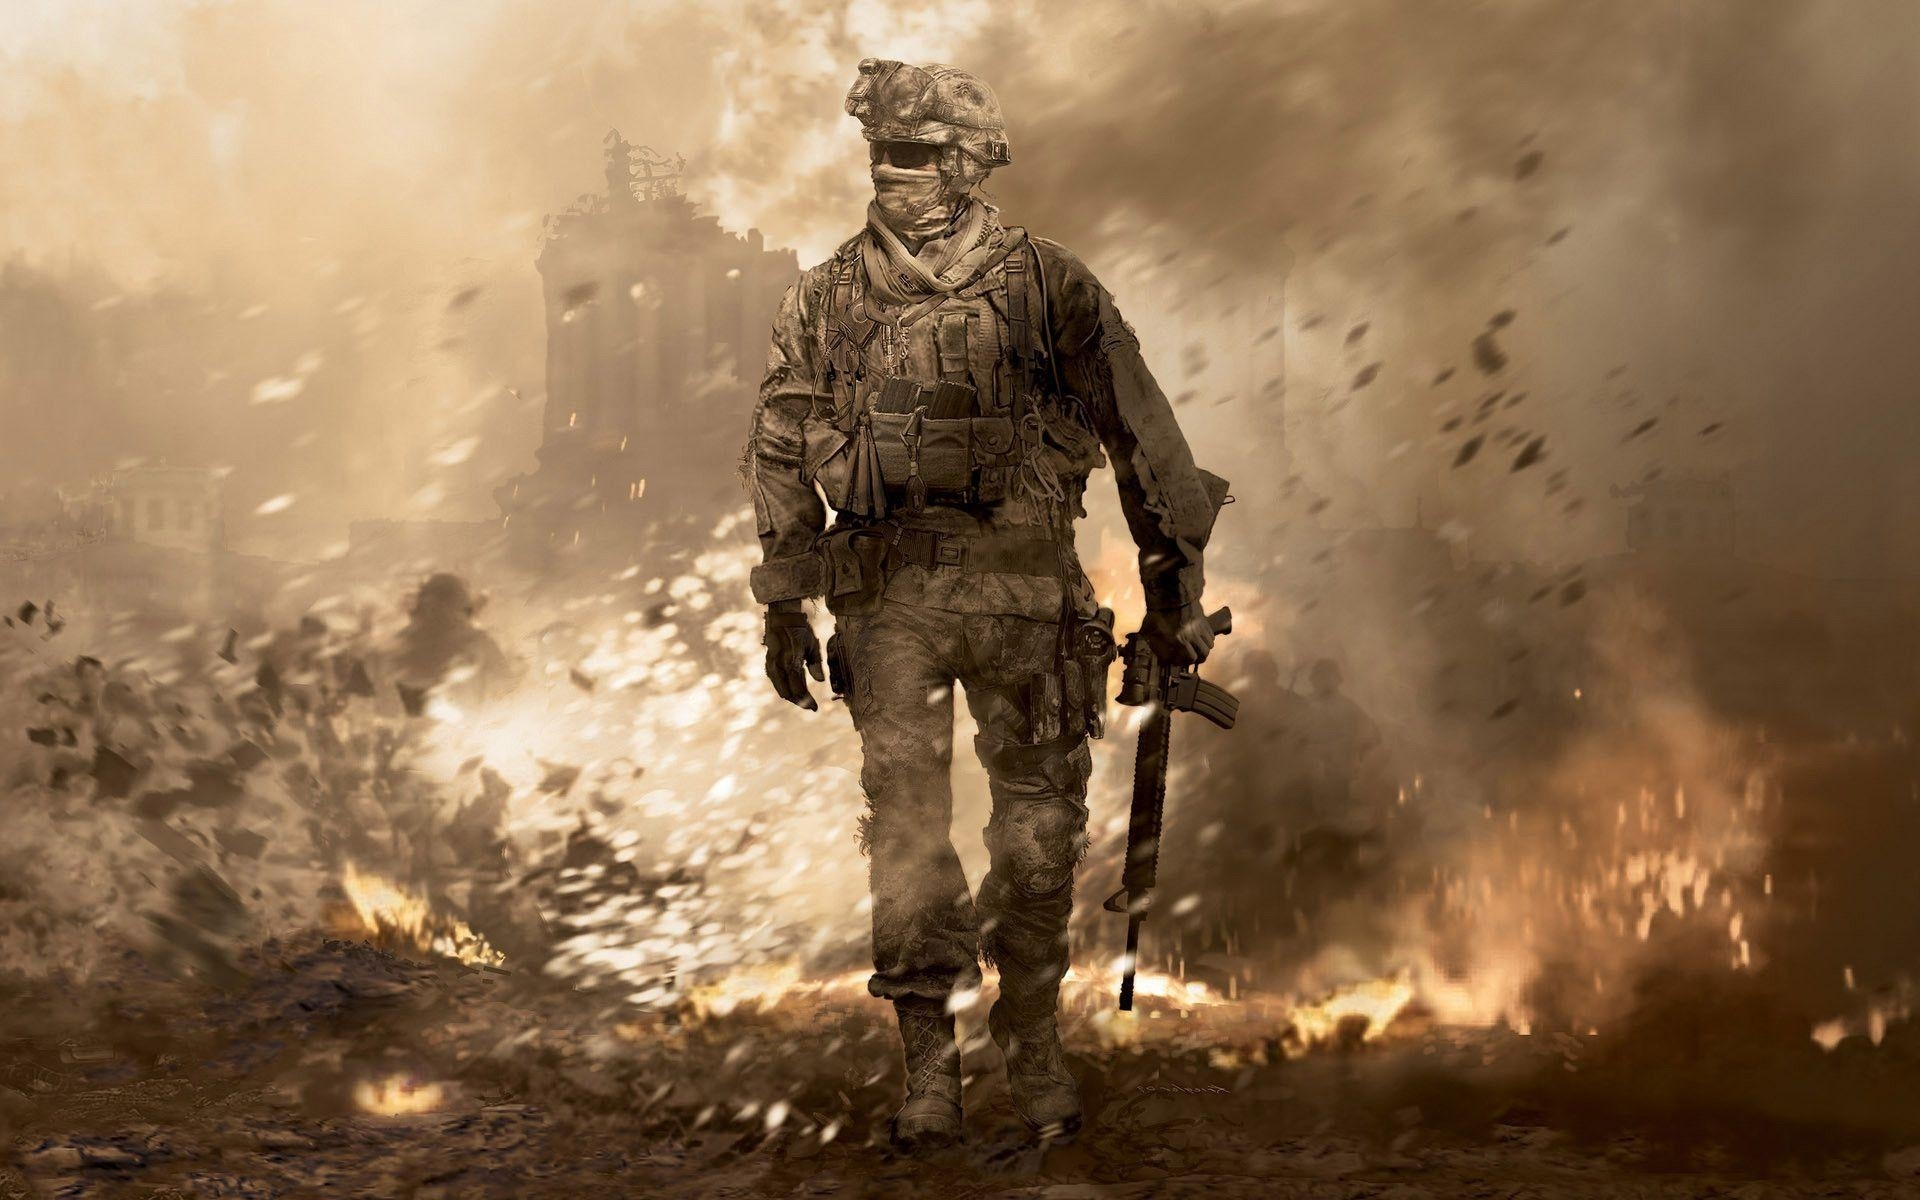 modern warfare 2 wallpapers 1080p - wallpaper cave